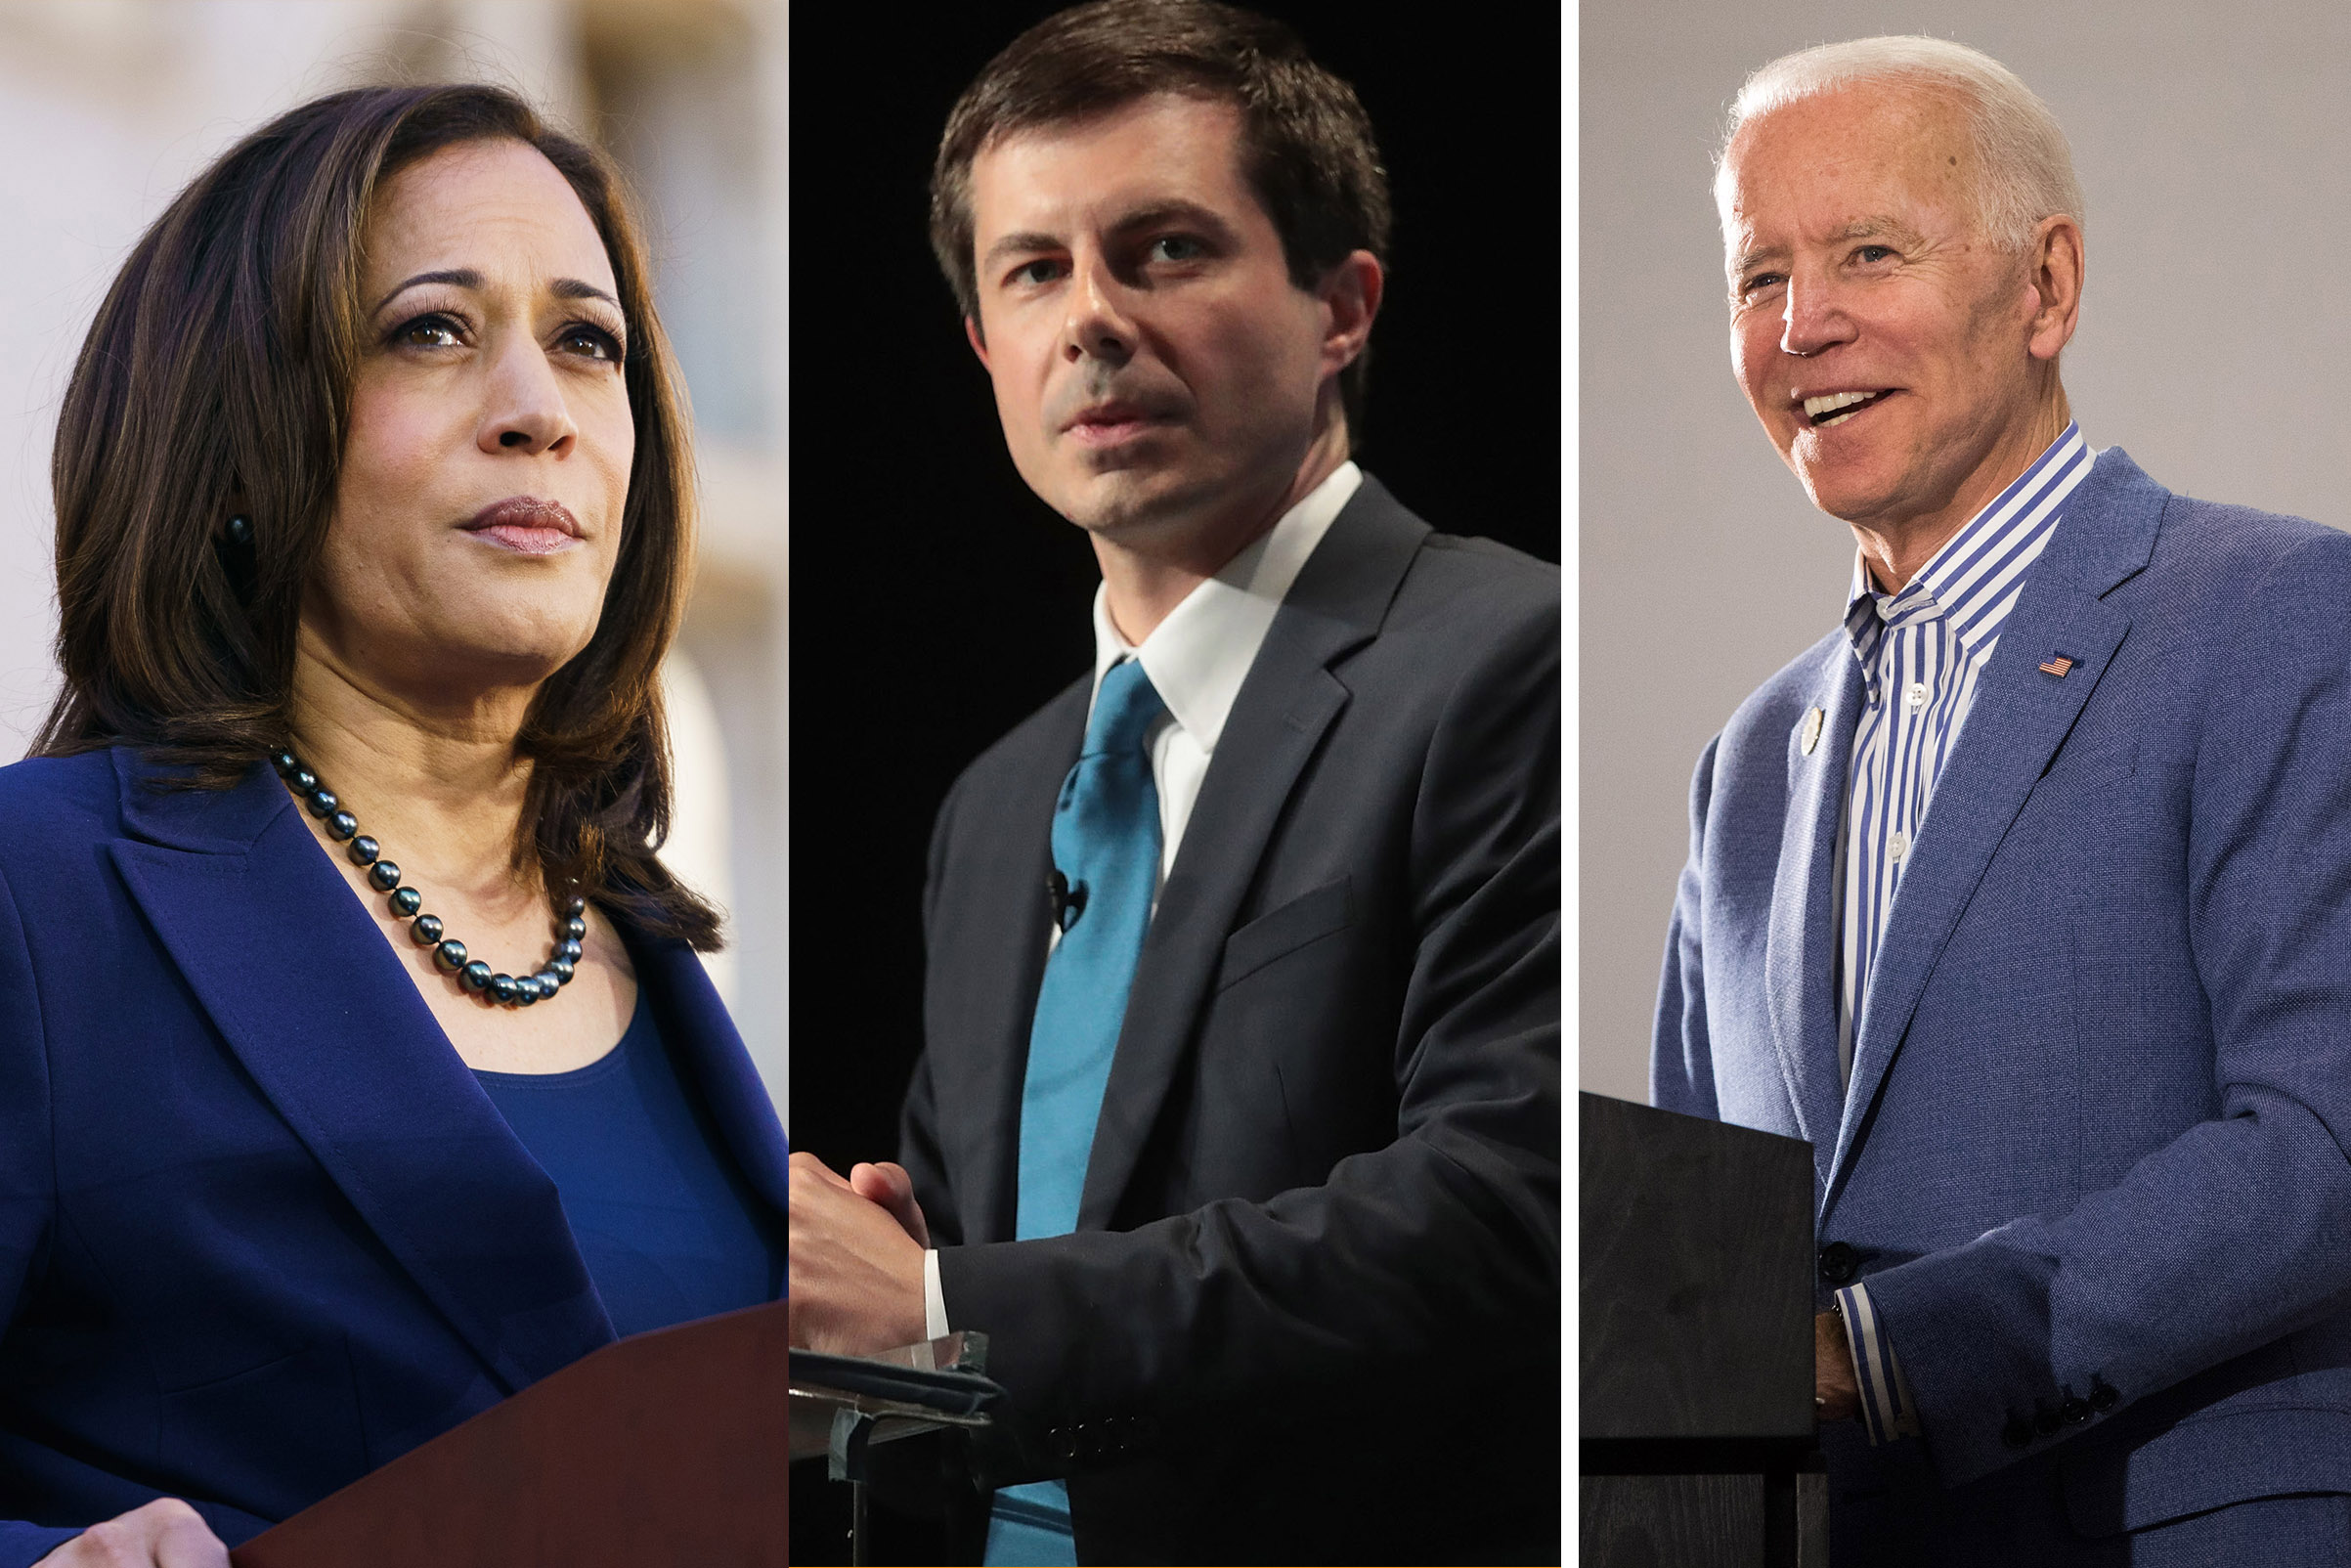 (L-R) U.S. Senator Kamala Harris (D-CA); Democratic presidential candidate and South Bend, Indiana Mayor Pete Buttigieg; Democratic presidential candidate and former U.S. Vice President Joe Biden